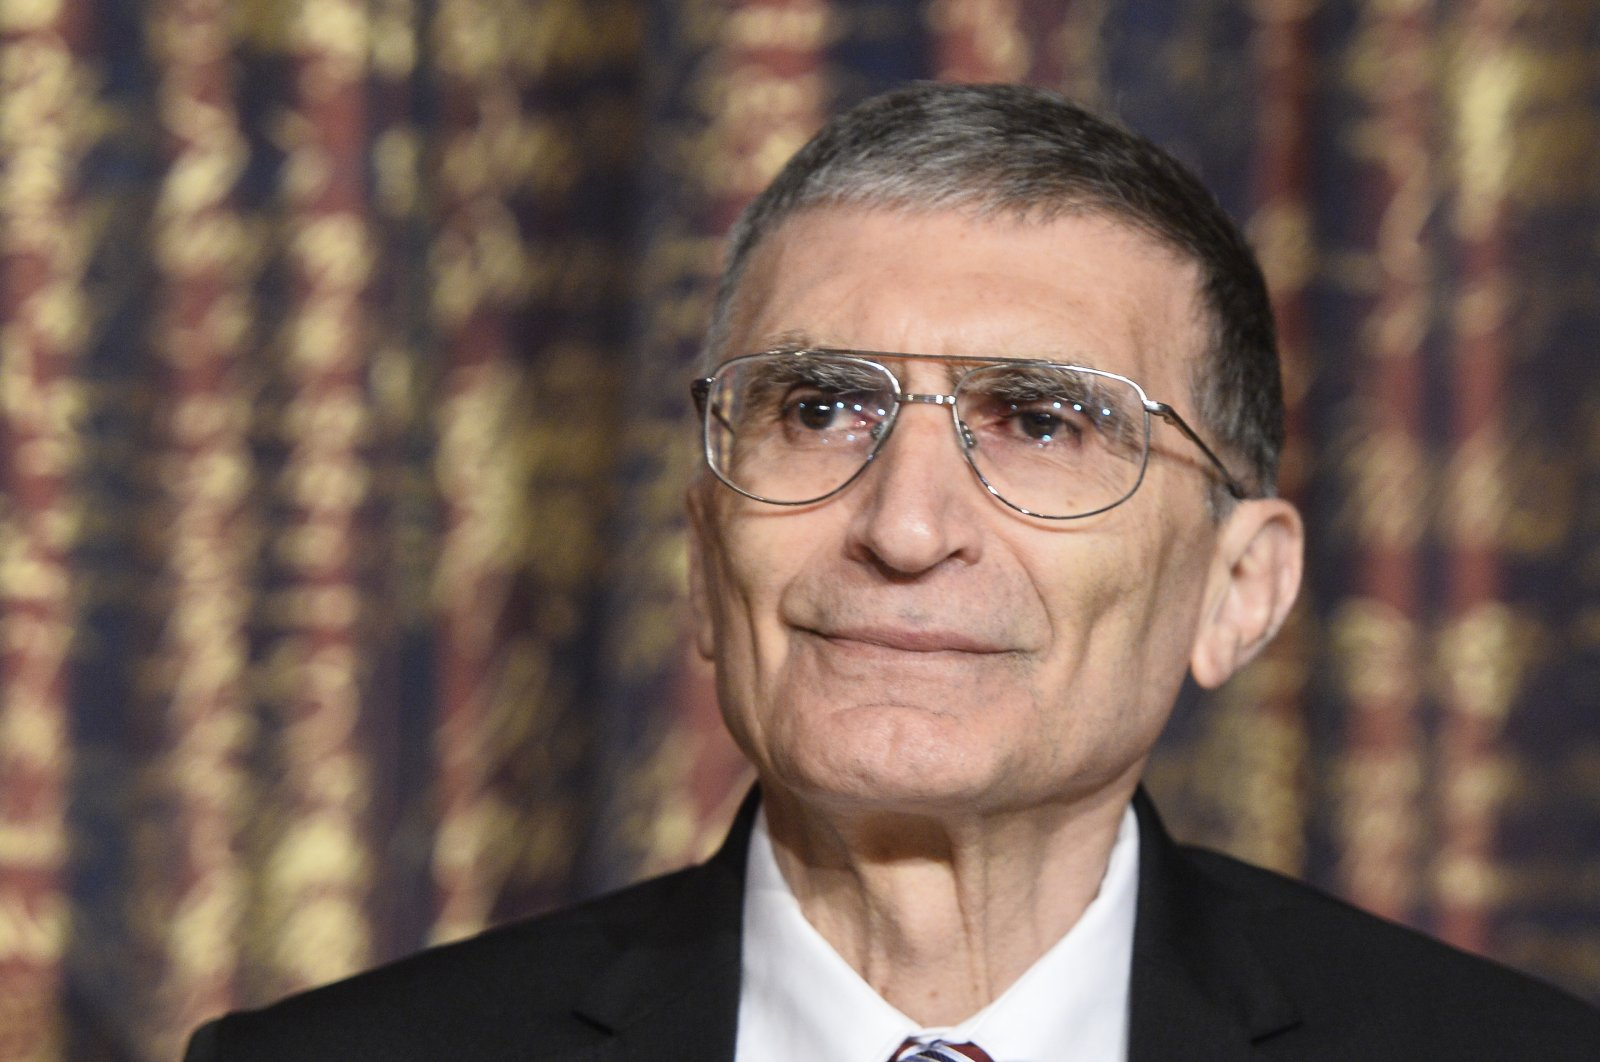 Nobel laureate in chemistry Aziz Sancar, looks on during a news conference at the Royal Swedish Academy of Science in Stockholm, Sweden, Dec. 7, 2015. (REUTERS Photo)